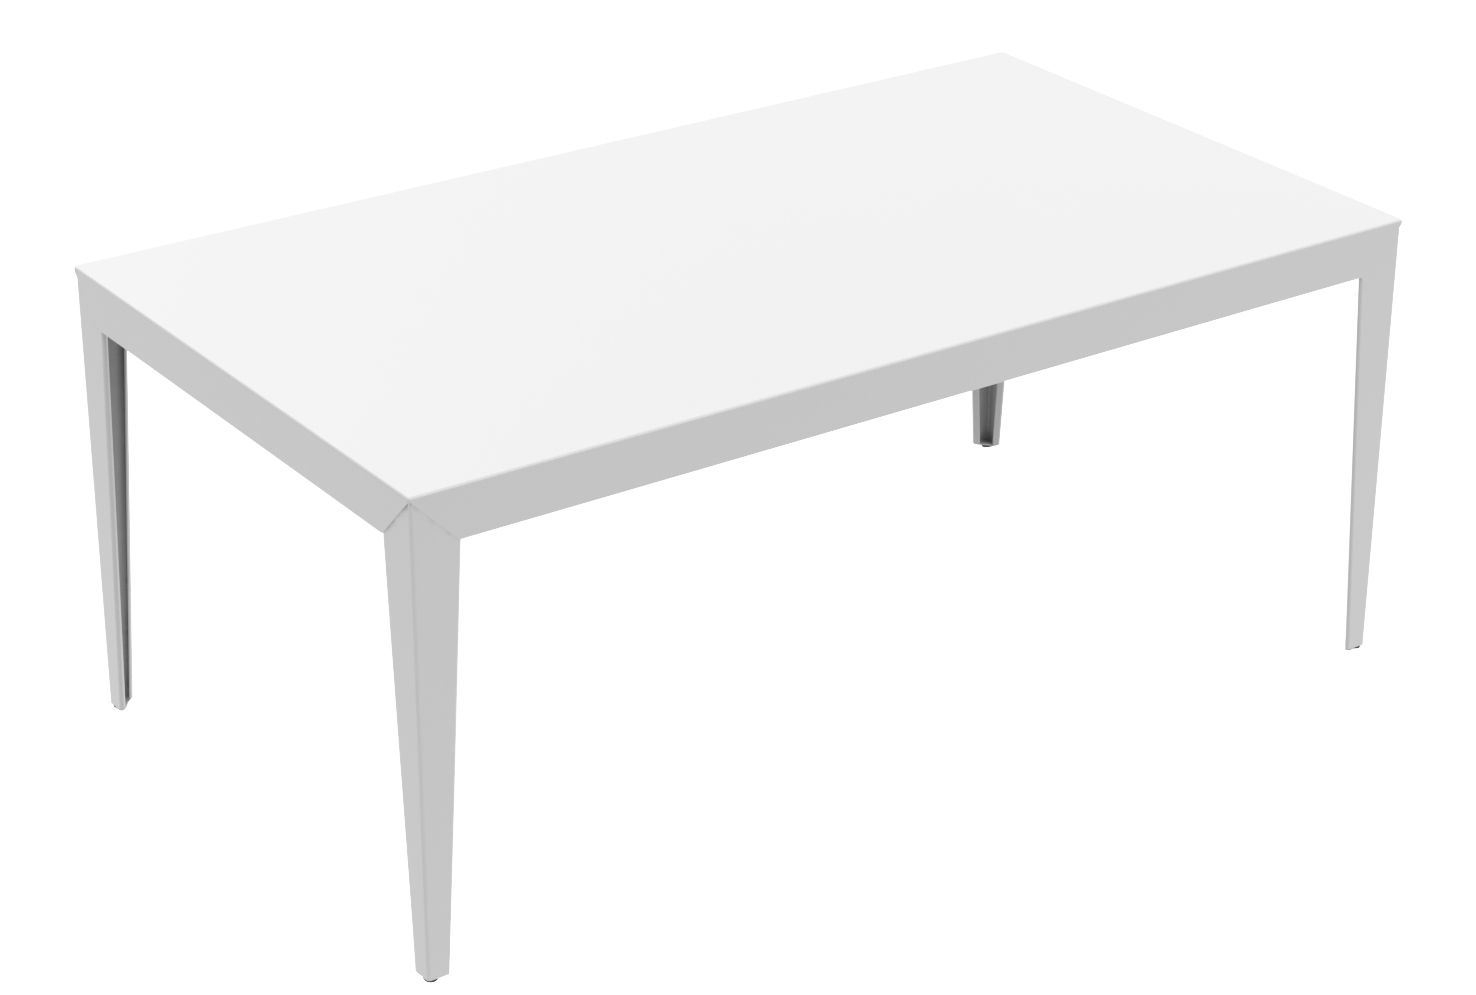 Furniture - Dining Tables - Zef Rectangular table by Matière Grise - White - Epoxy painted steel